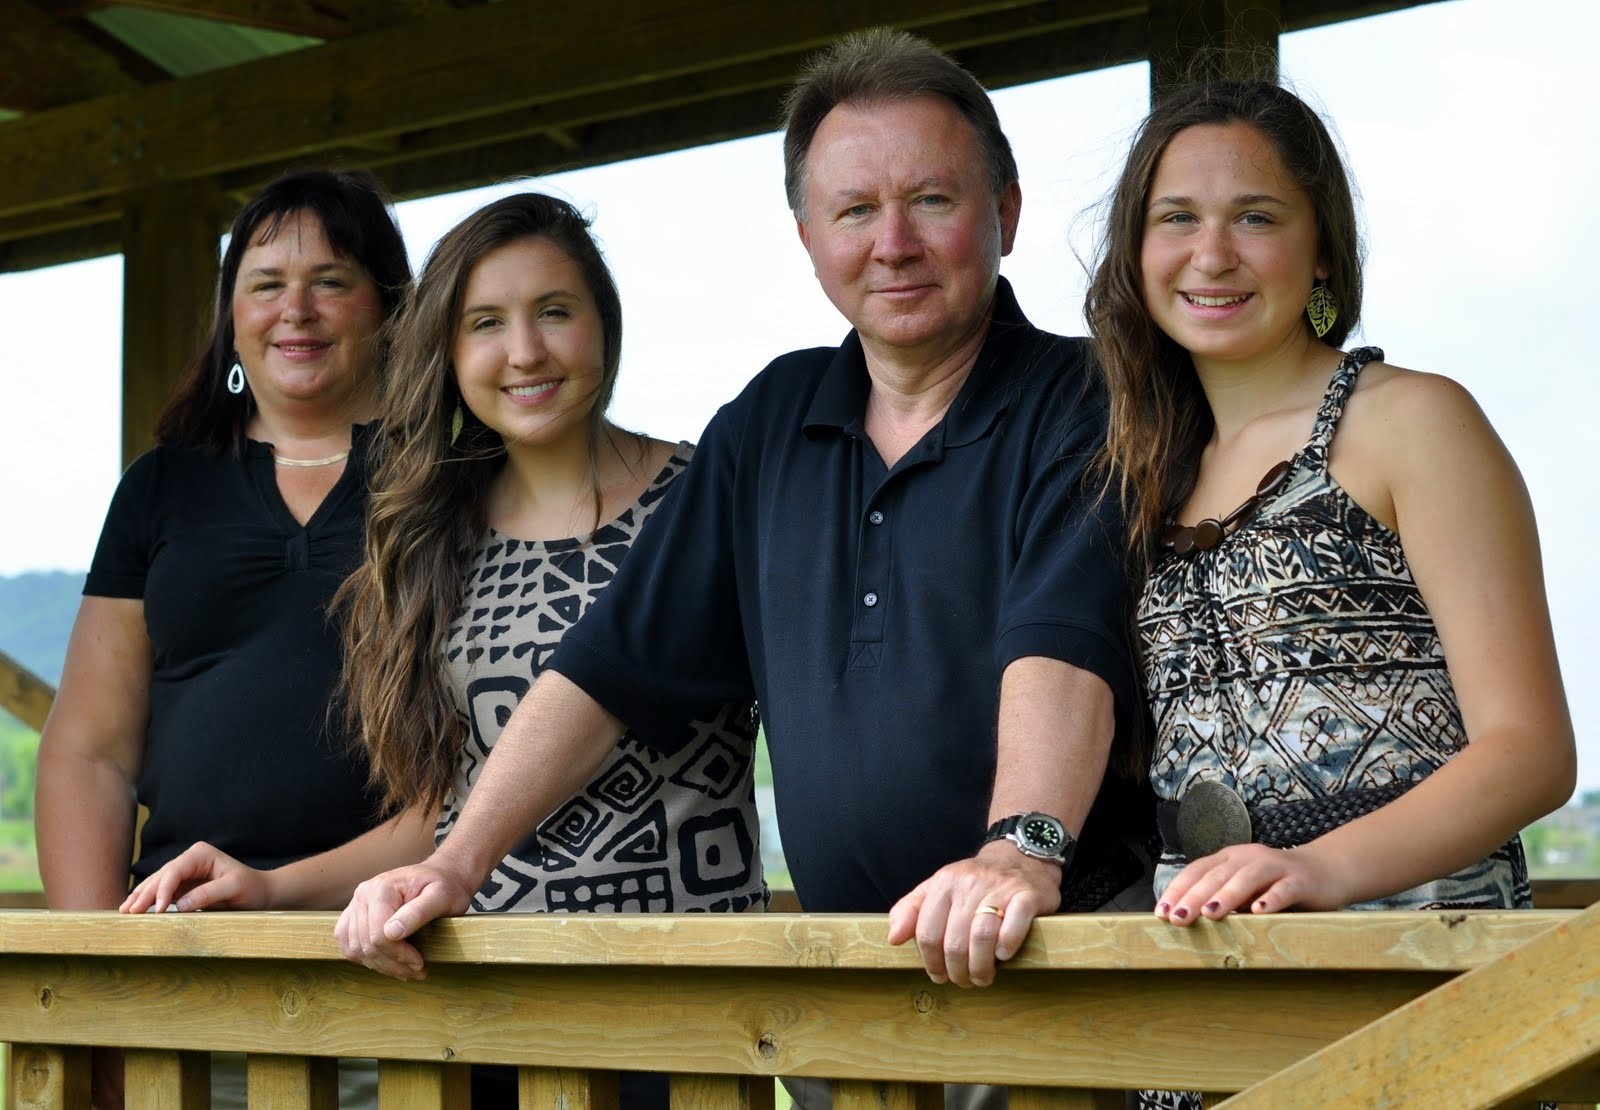 Steve with his wife Gloria and their daughters Katelyn and Stephanie.